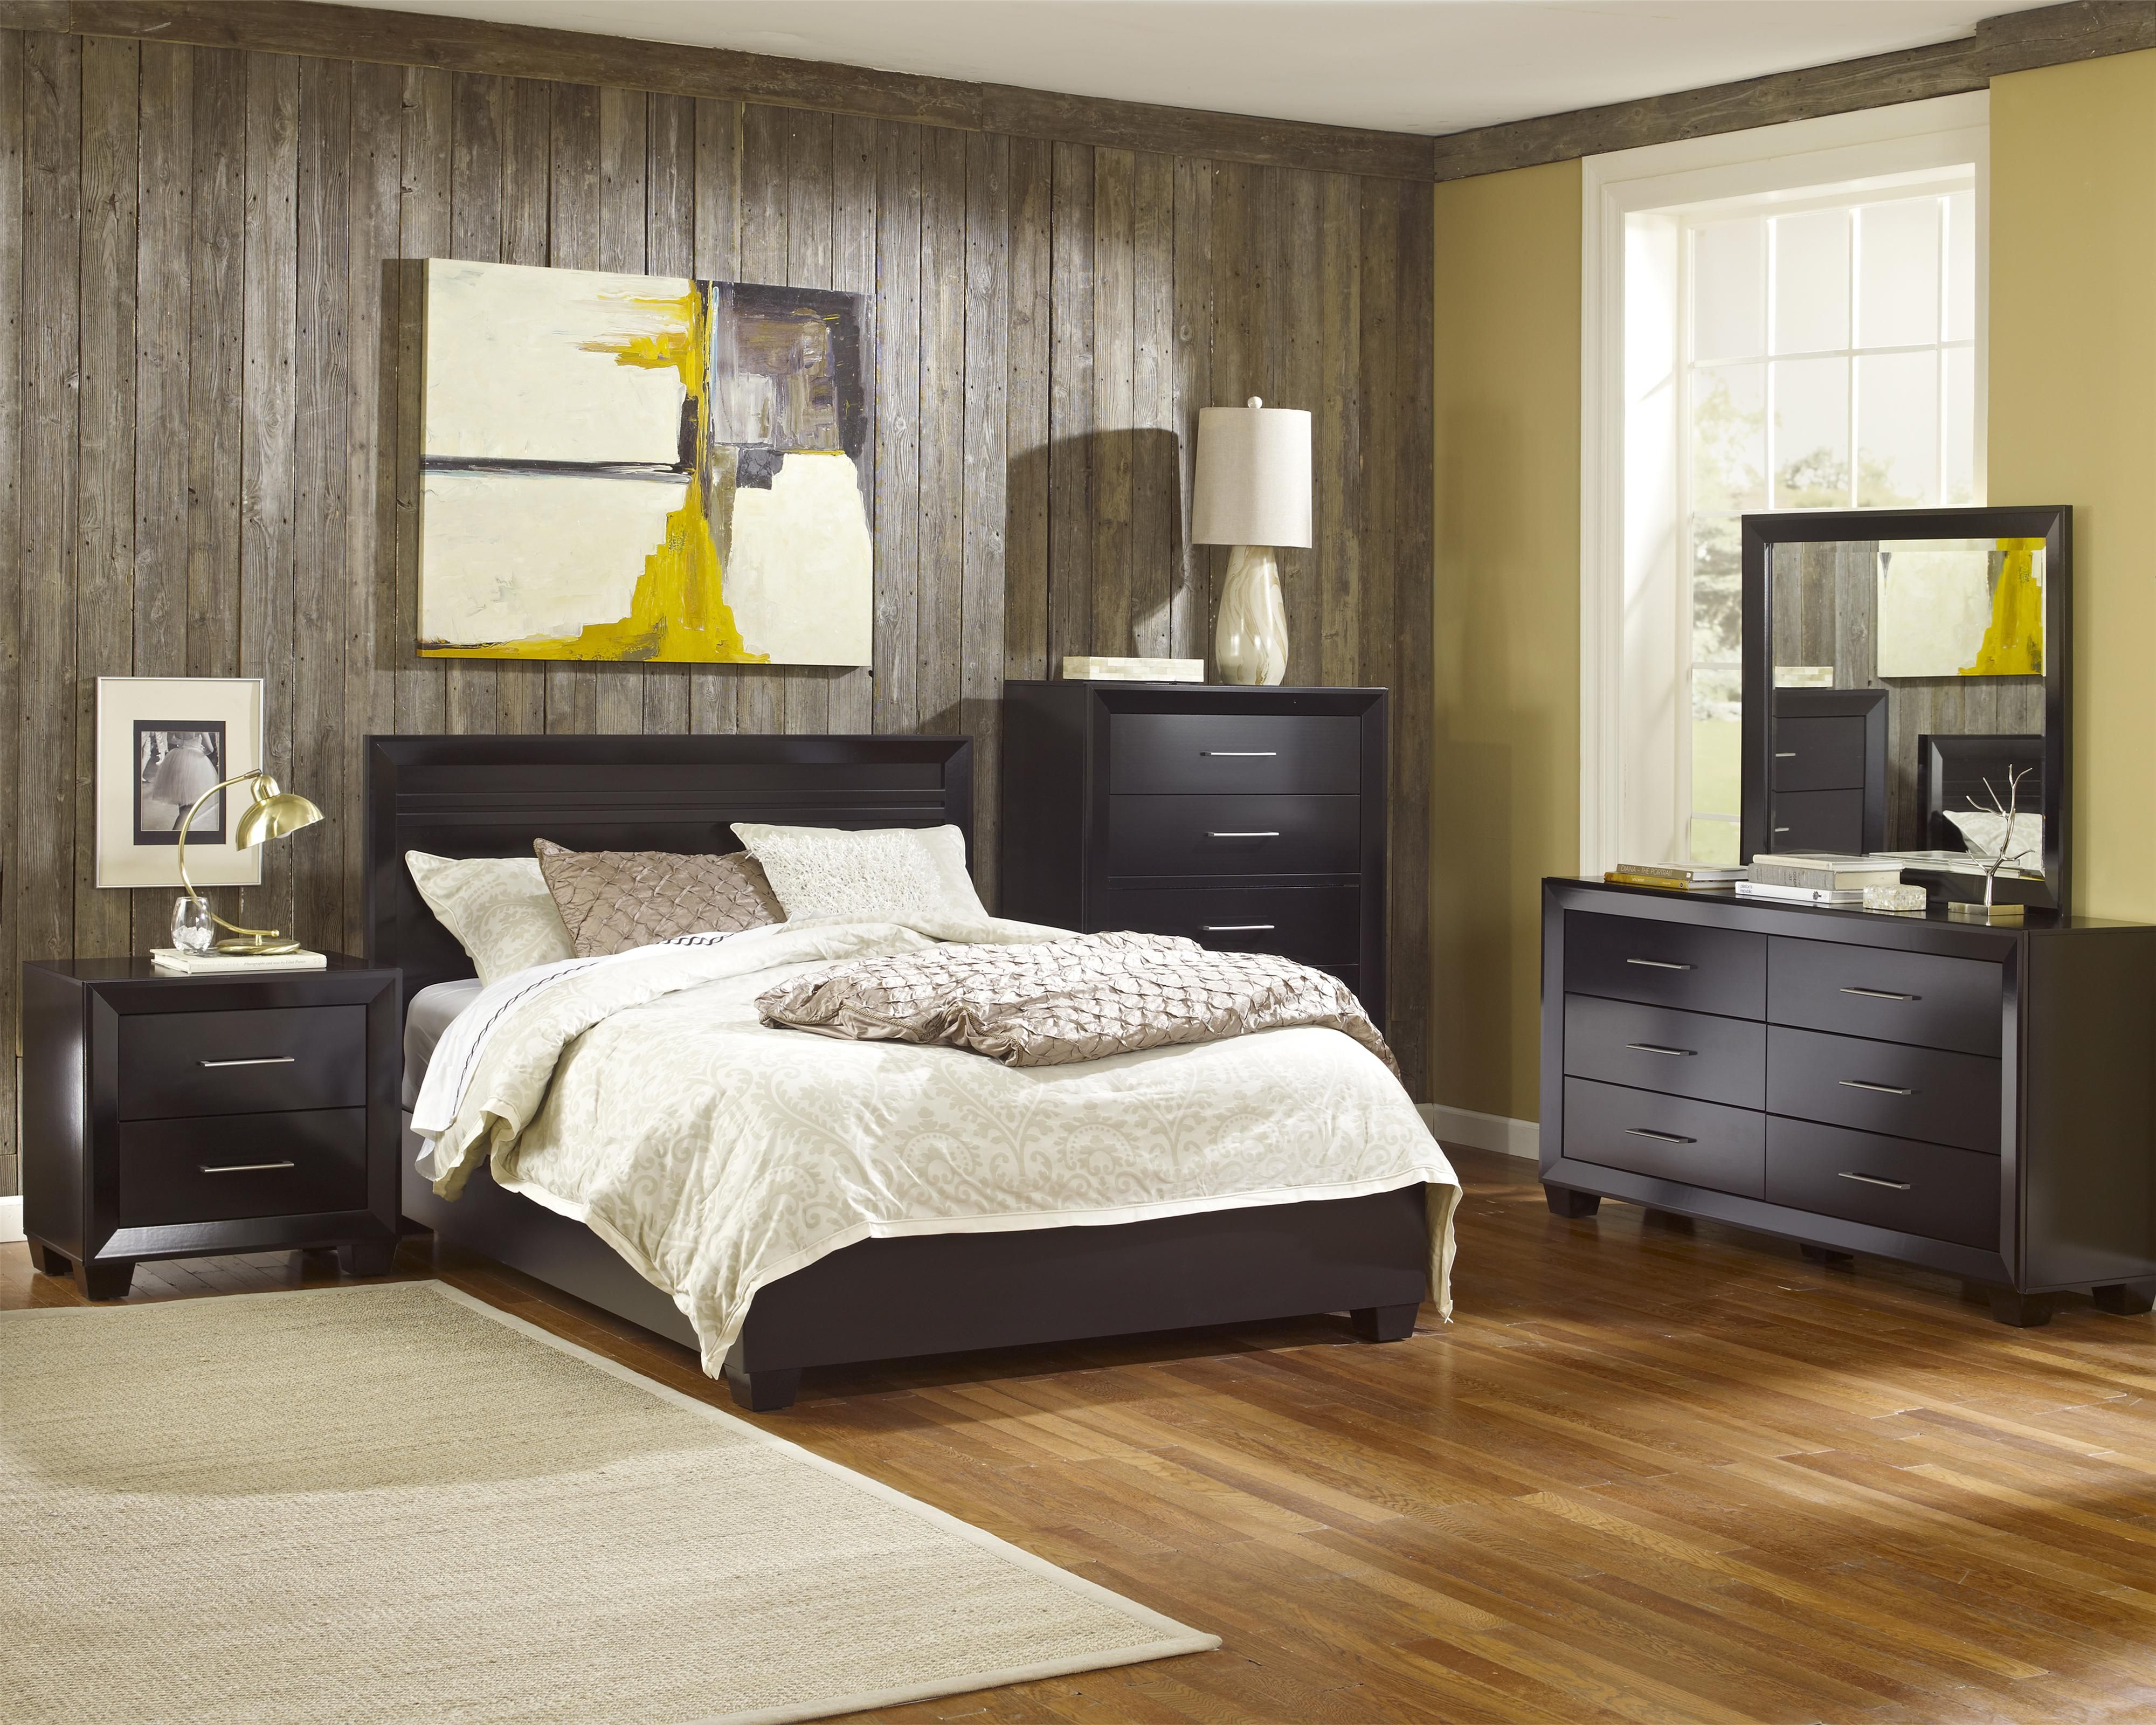 Hudson Hud By Lang A1 Furniture Amp Bedding Lang Hudson